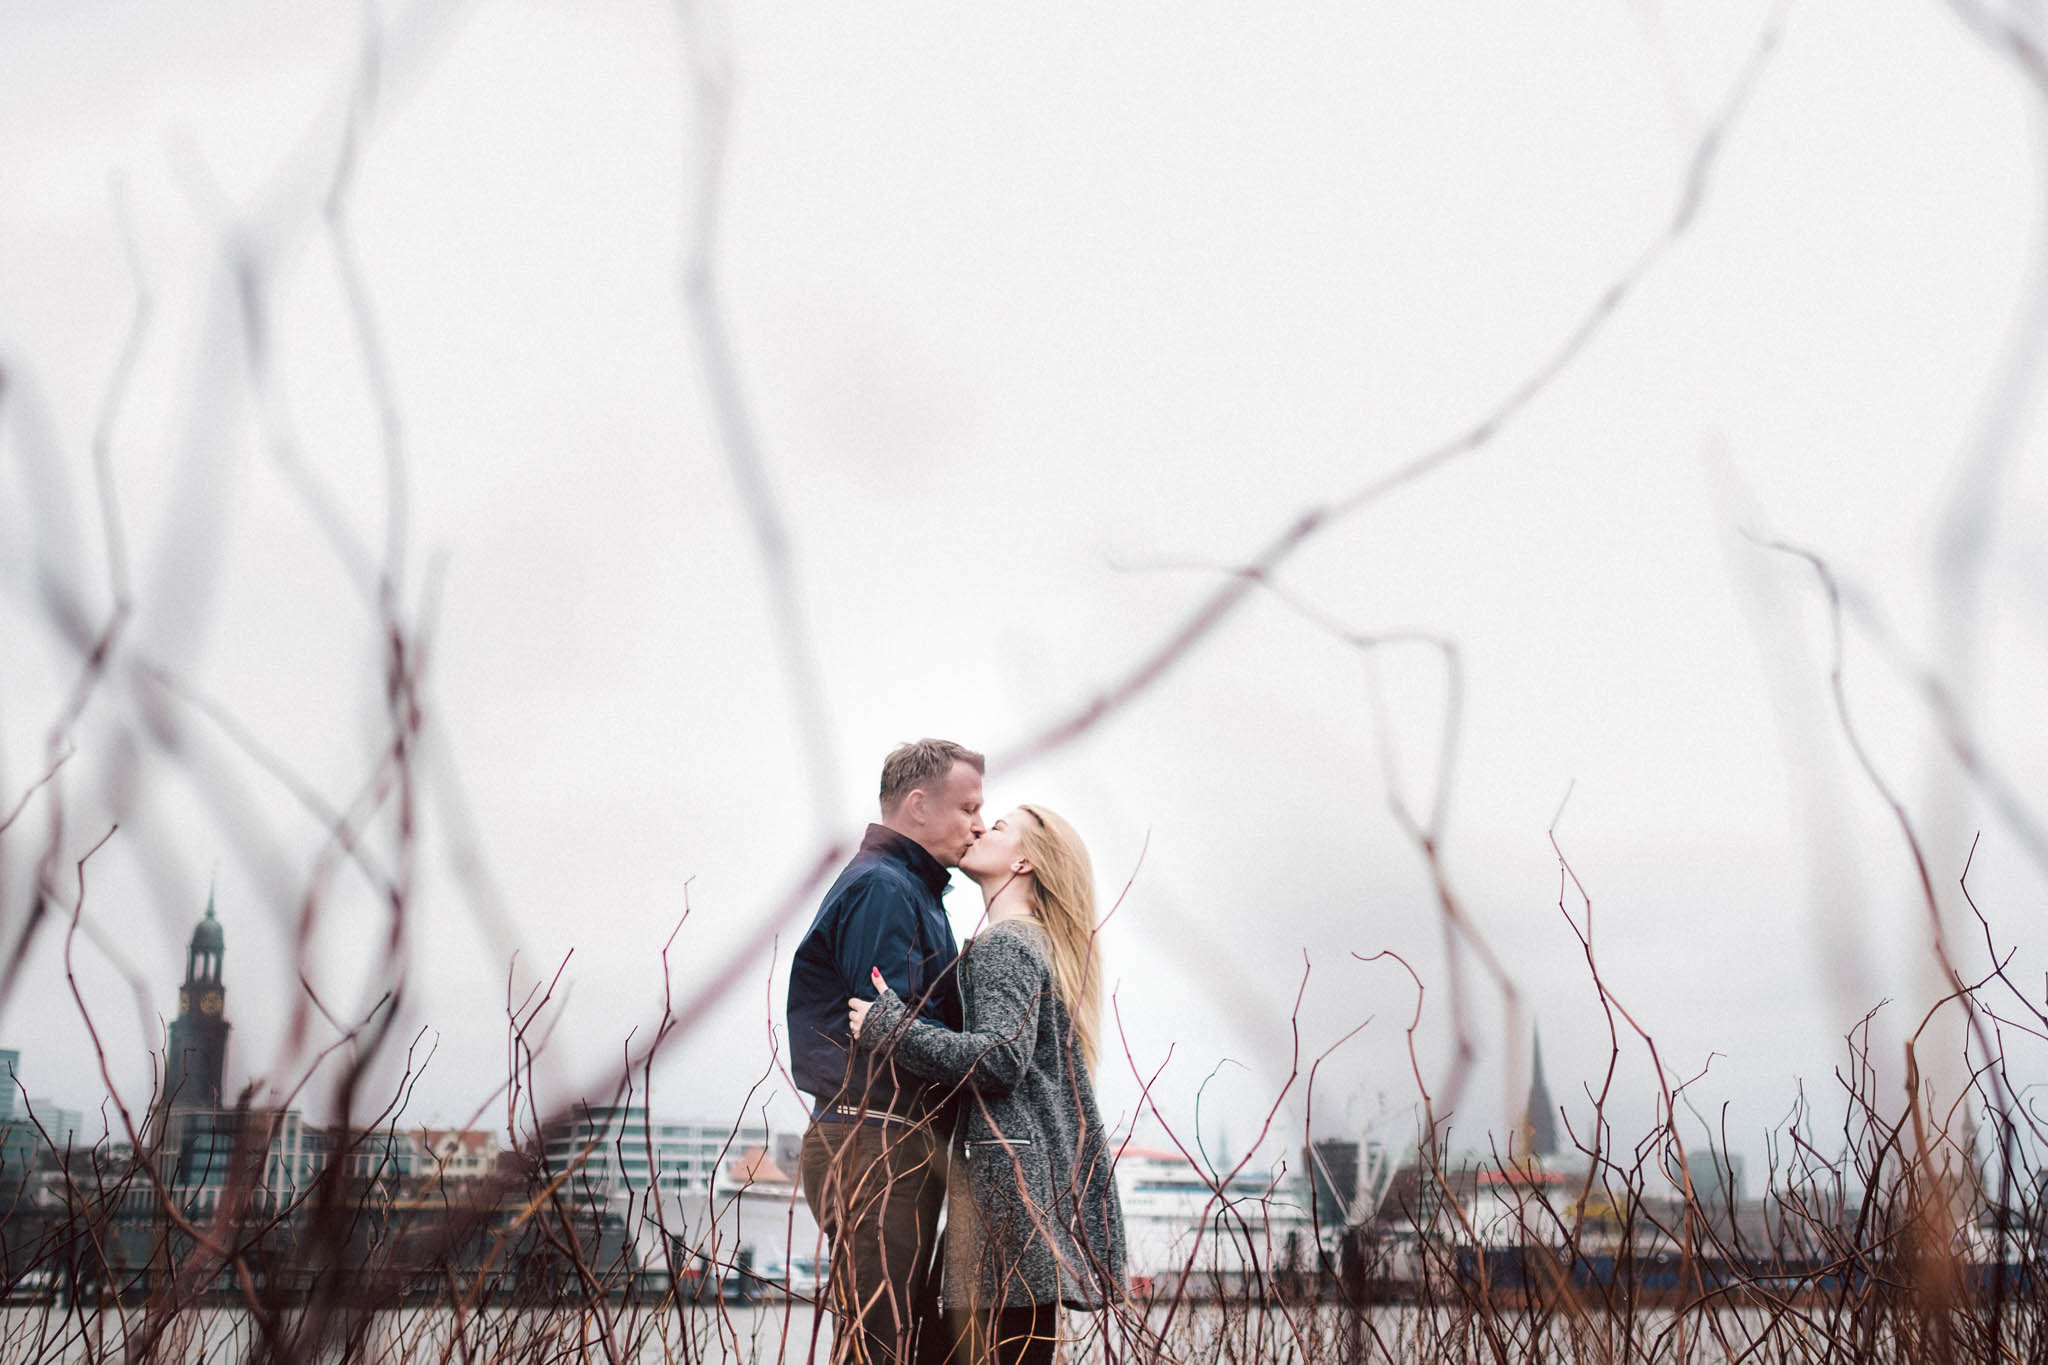 Engagementshooting, Hochzeitsfieber by Photo-Schomburg, Pärchenshoot, Hamburg, Elbe, Hamburger Hafen, Hochzeitsfotograf, Wedding, Coupleshoot, Hochzeitsfotografie-9